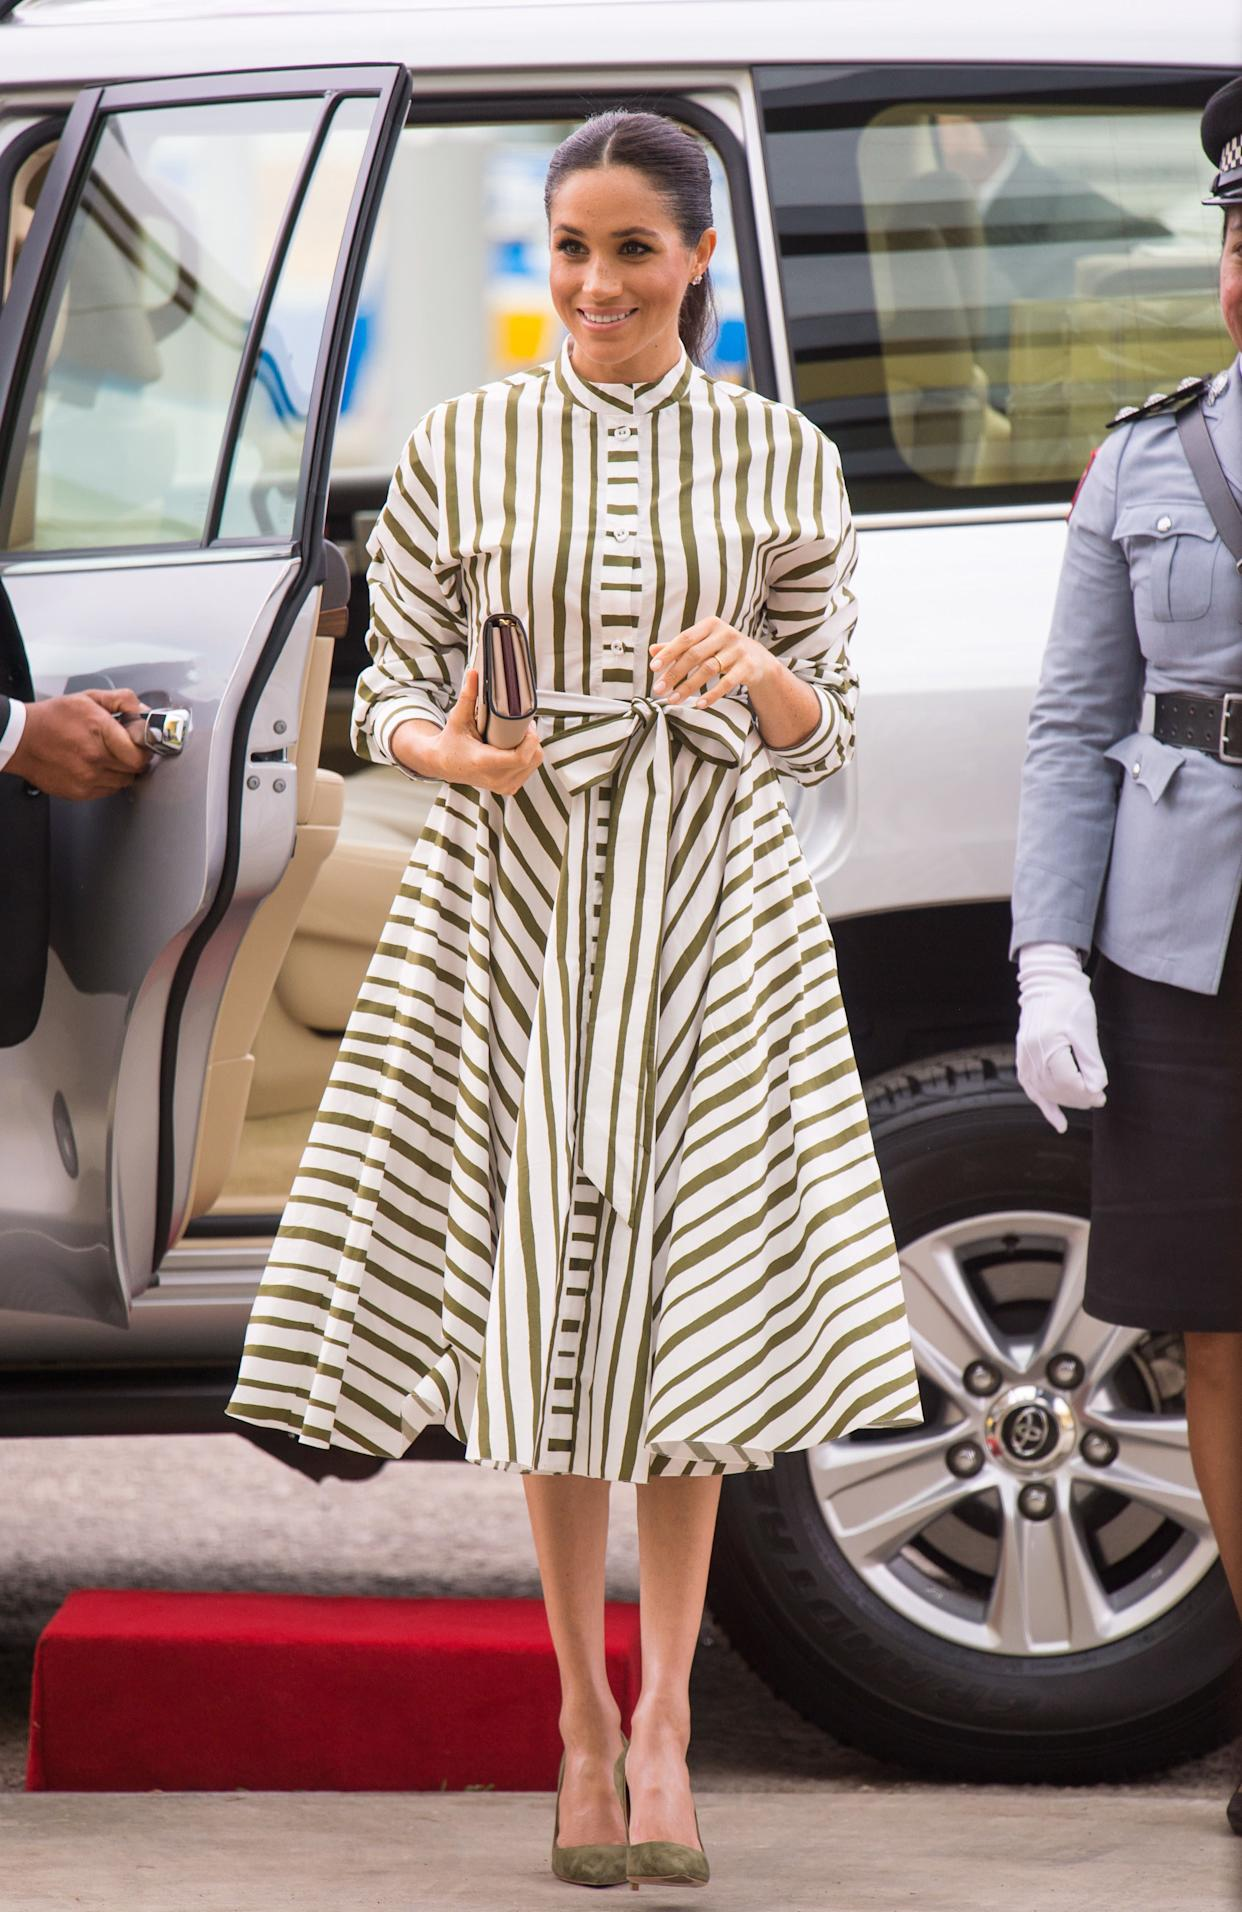 The Duchess of Sussex visits an exhibition of Tongan handicrafts, mats and tapa cloths at the Fa'onelua Convention Centre on Oct. 26 in Nuku'alofa, Tonga.